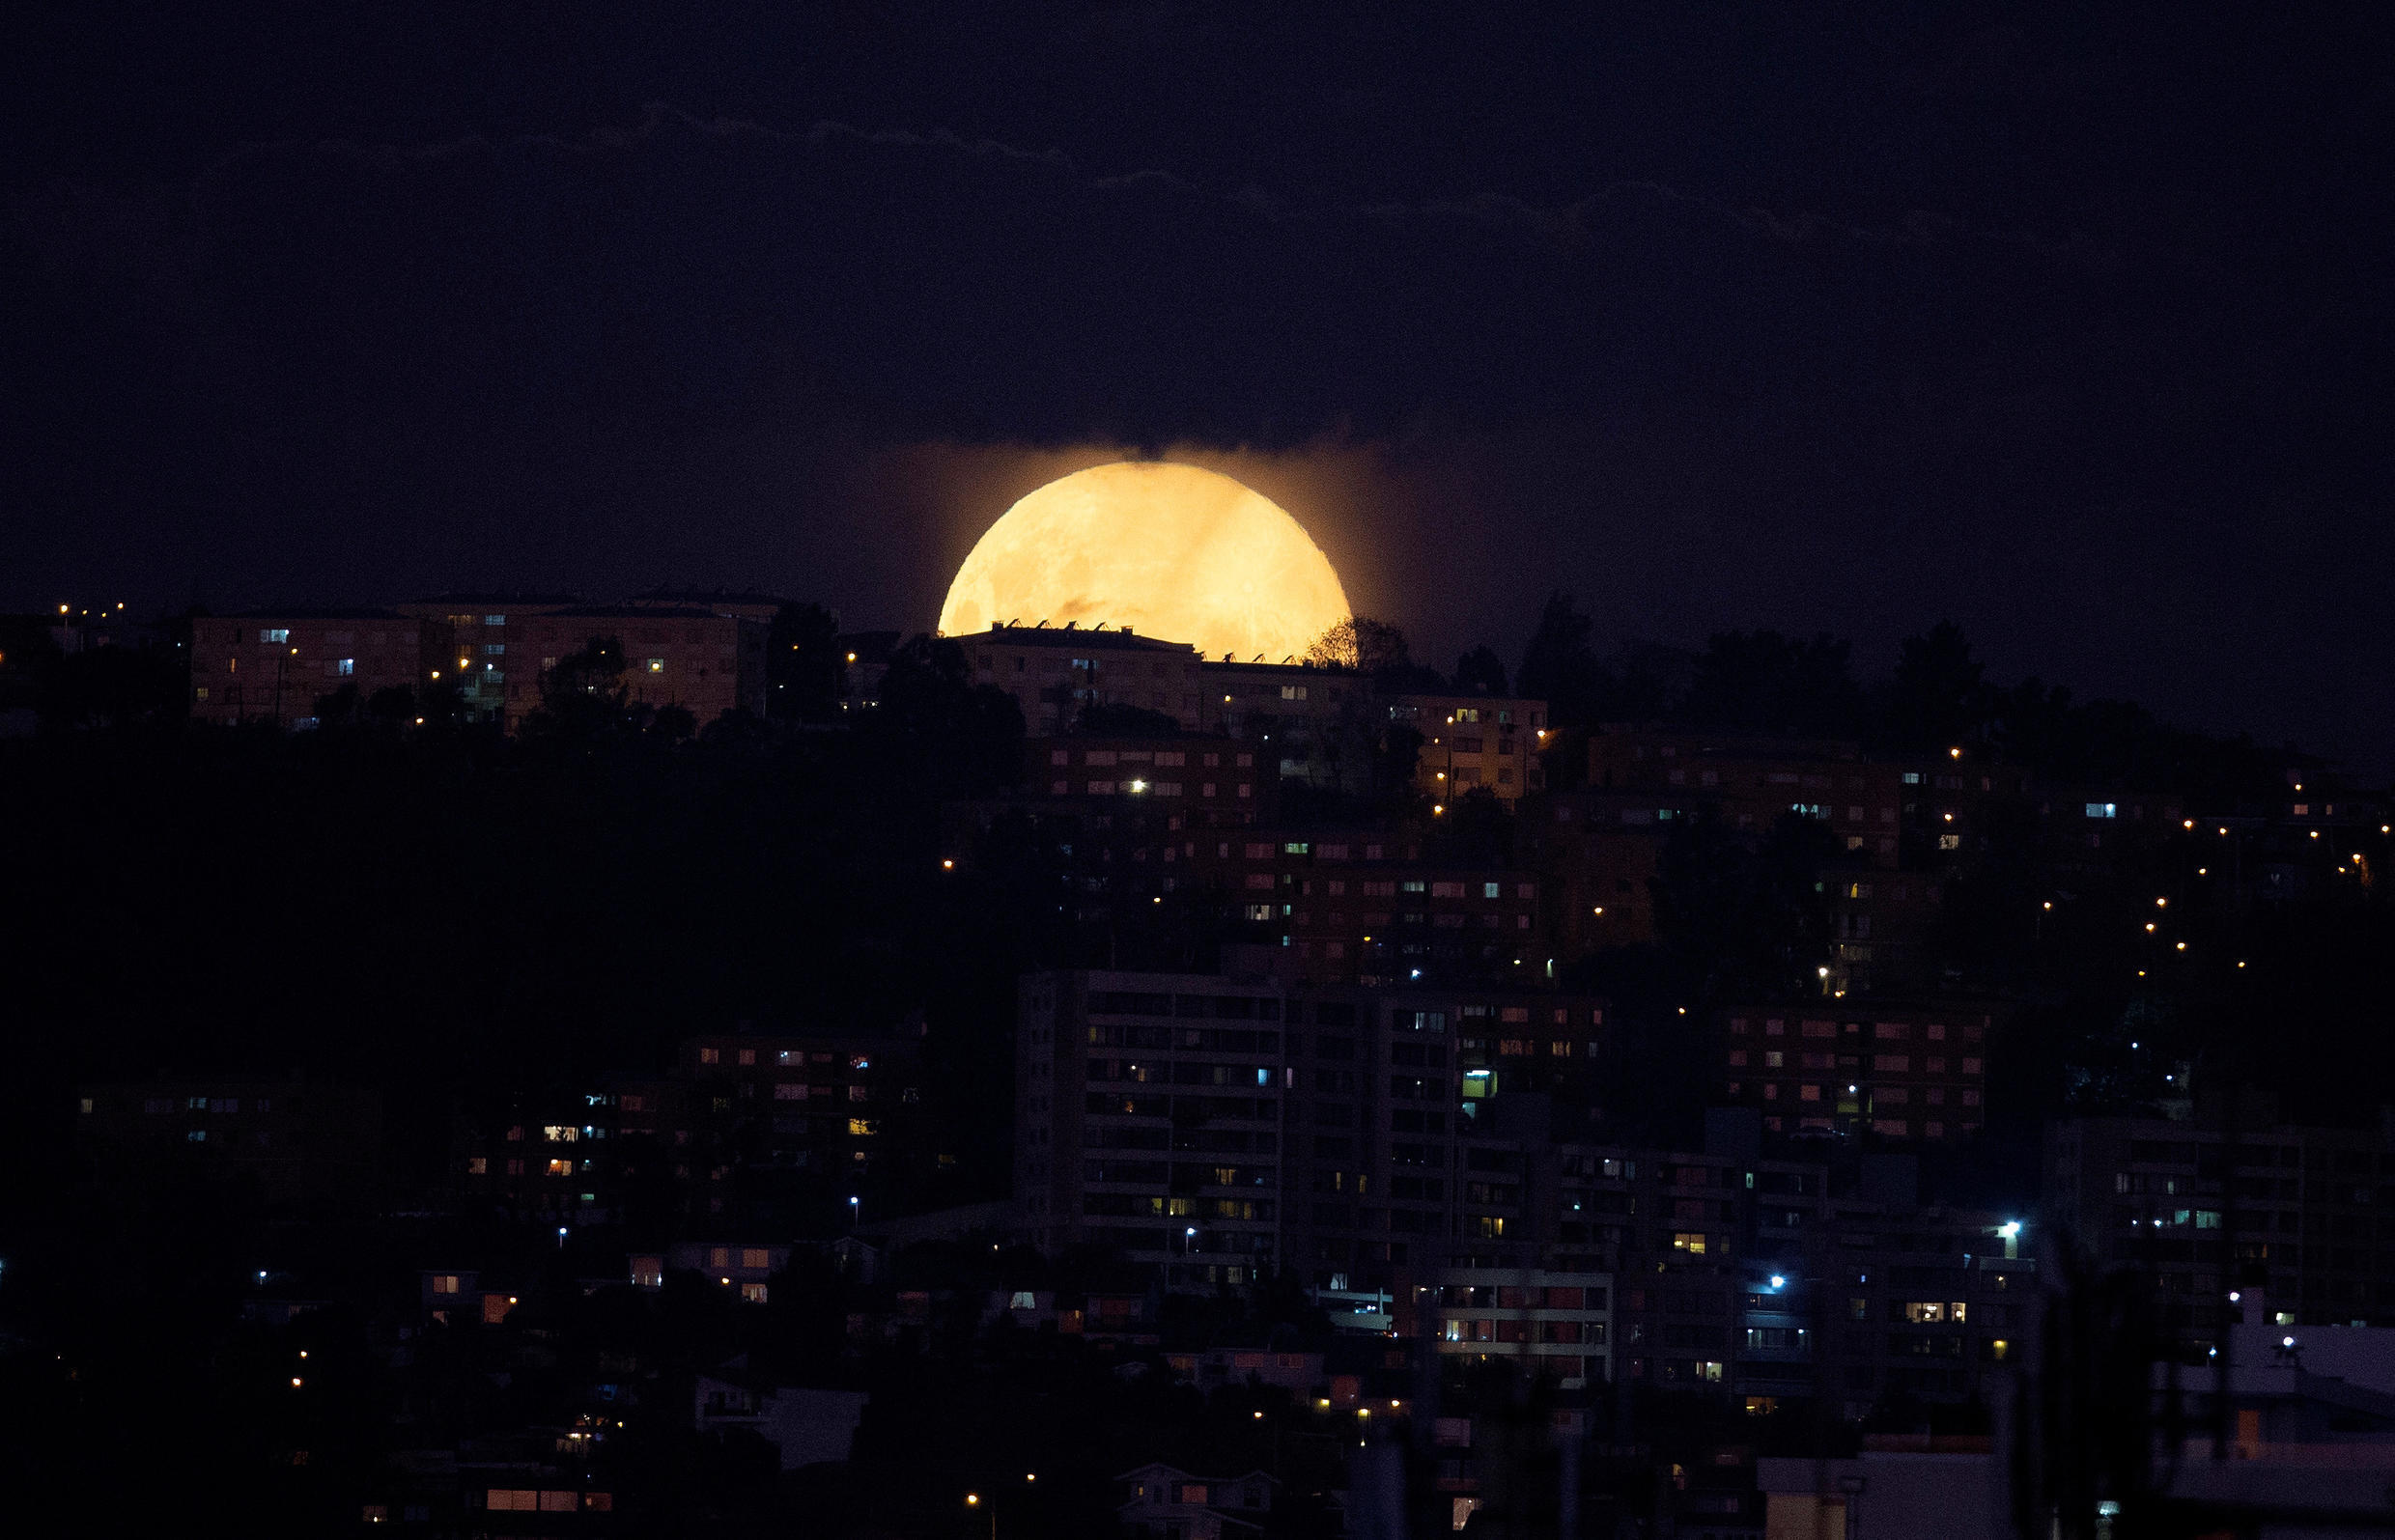 Full Moon 2020: What is a Supermoon? Is it a Supermoon tonight?